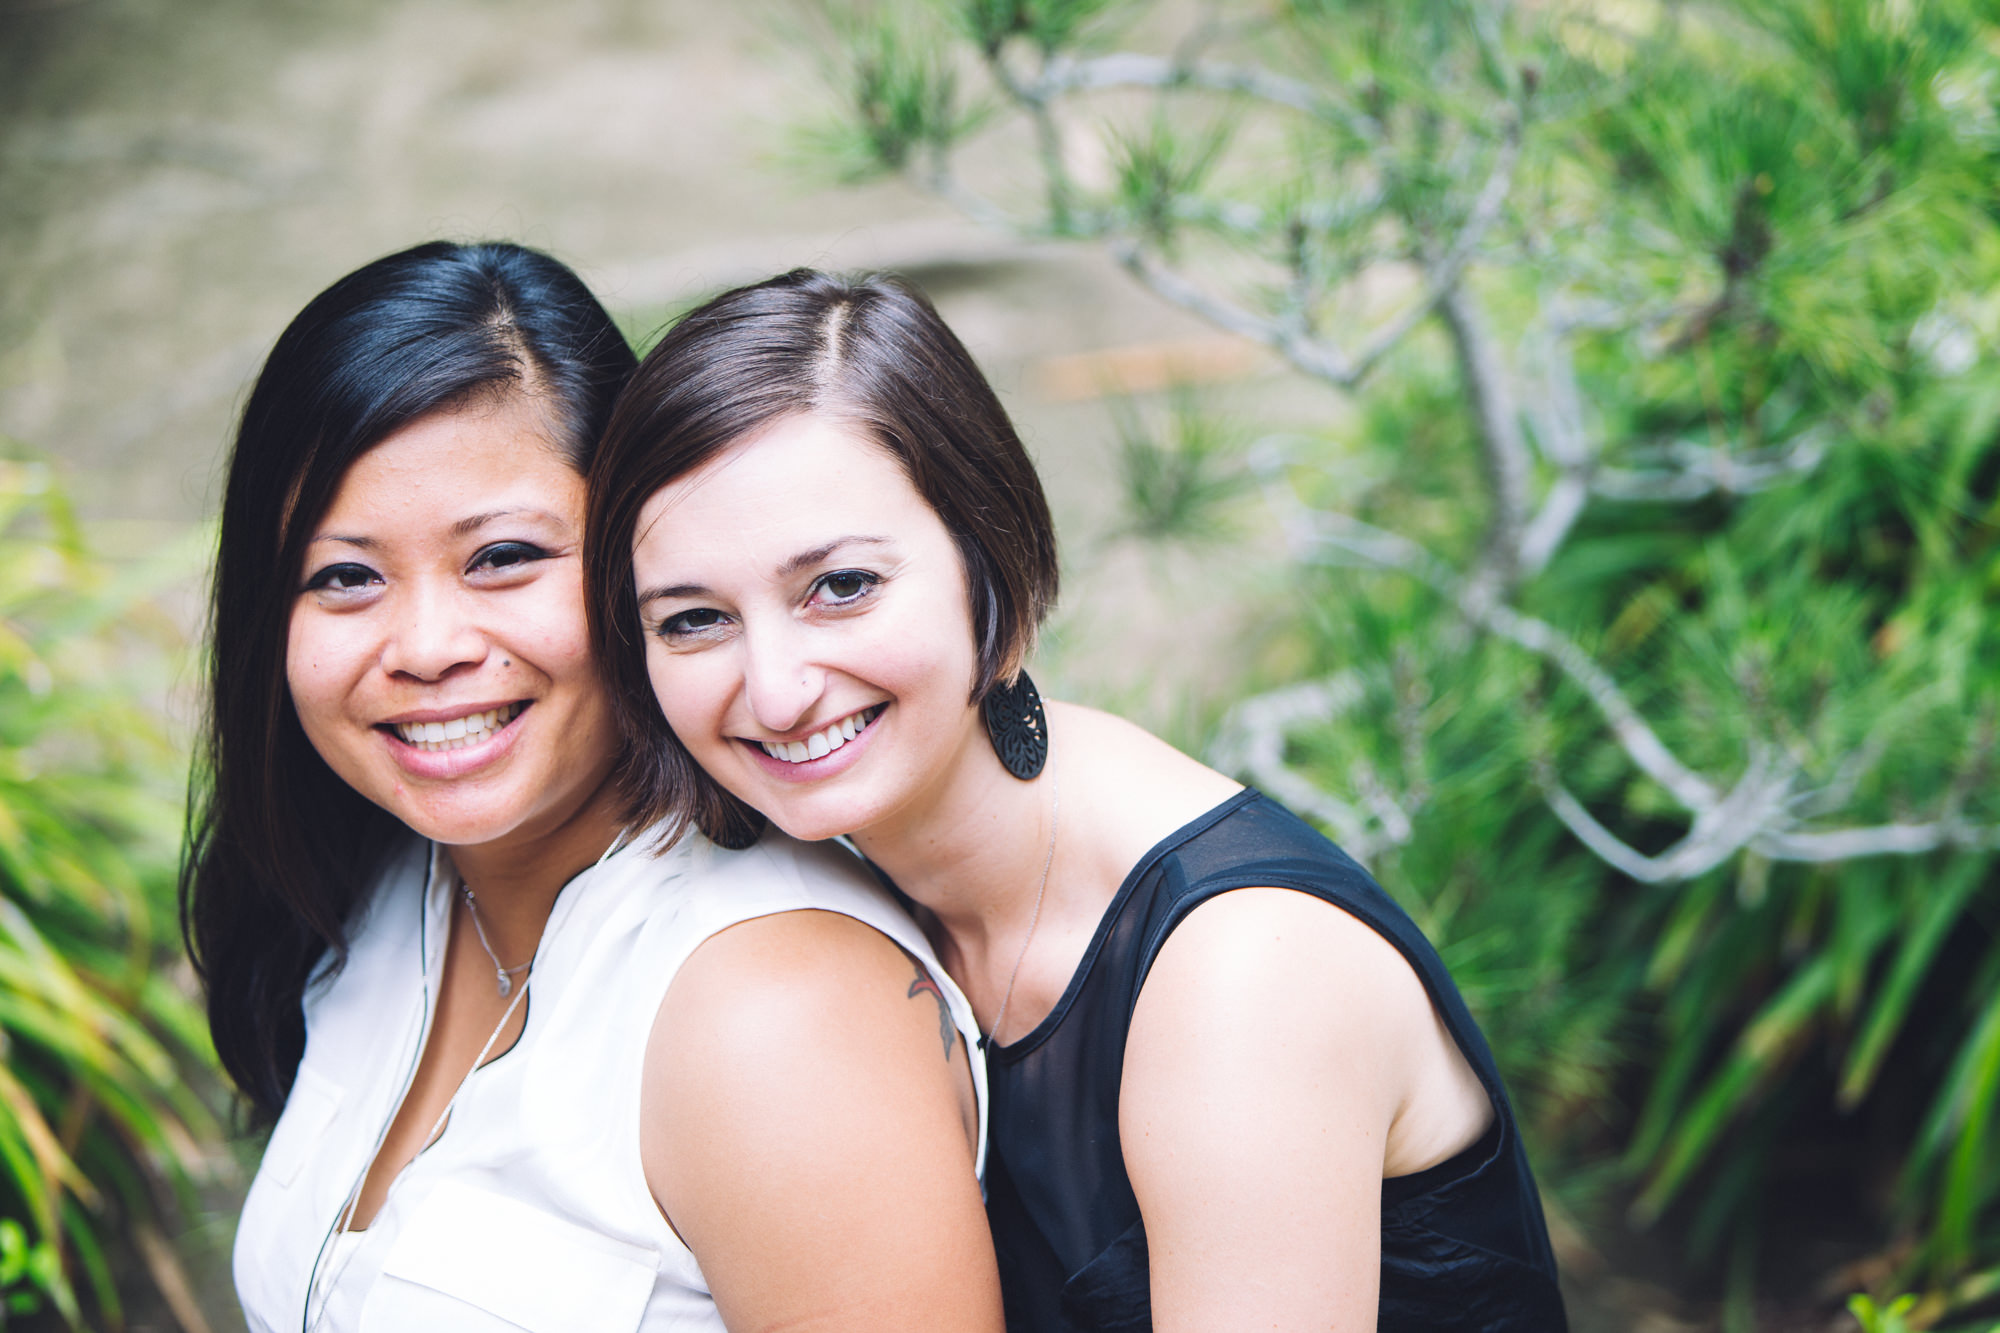 Dina_&_Stacy_Engagement_Photography_The_Light_&_Glass-013.jpg